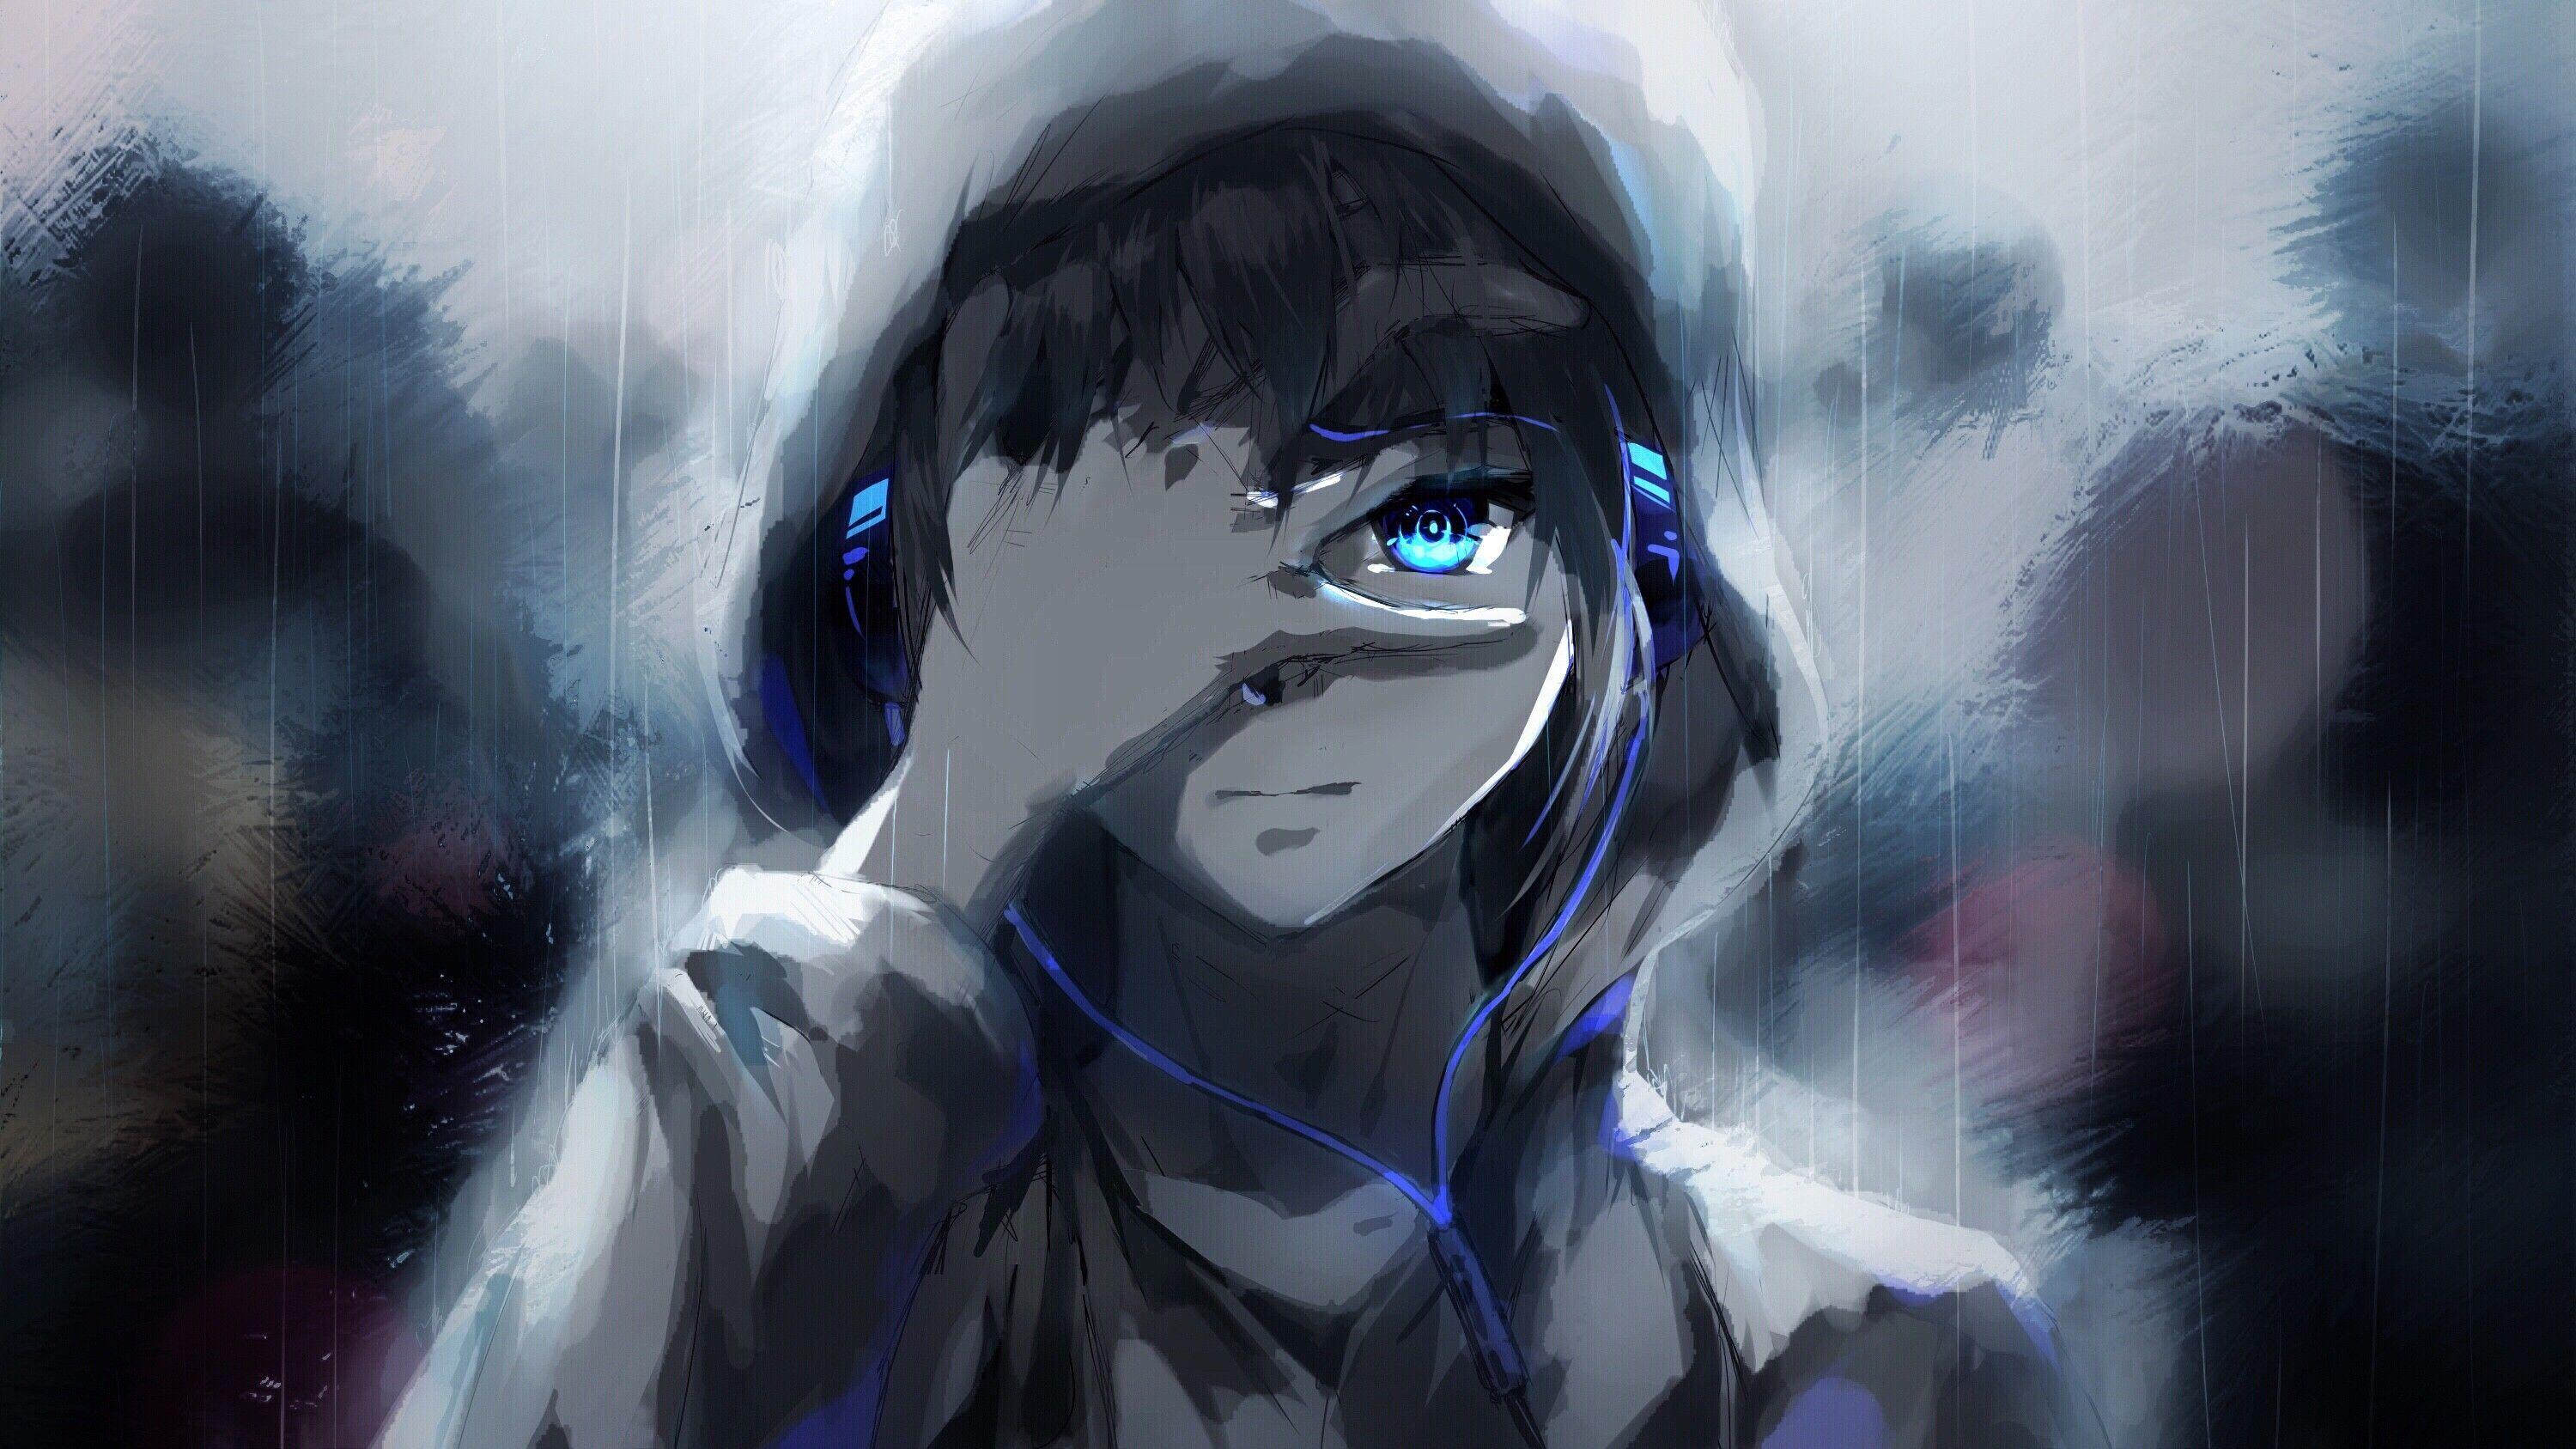 Angry Anime Boy Sketch Wallpapers Wallpaper Cave